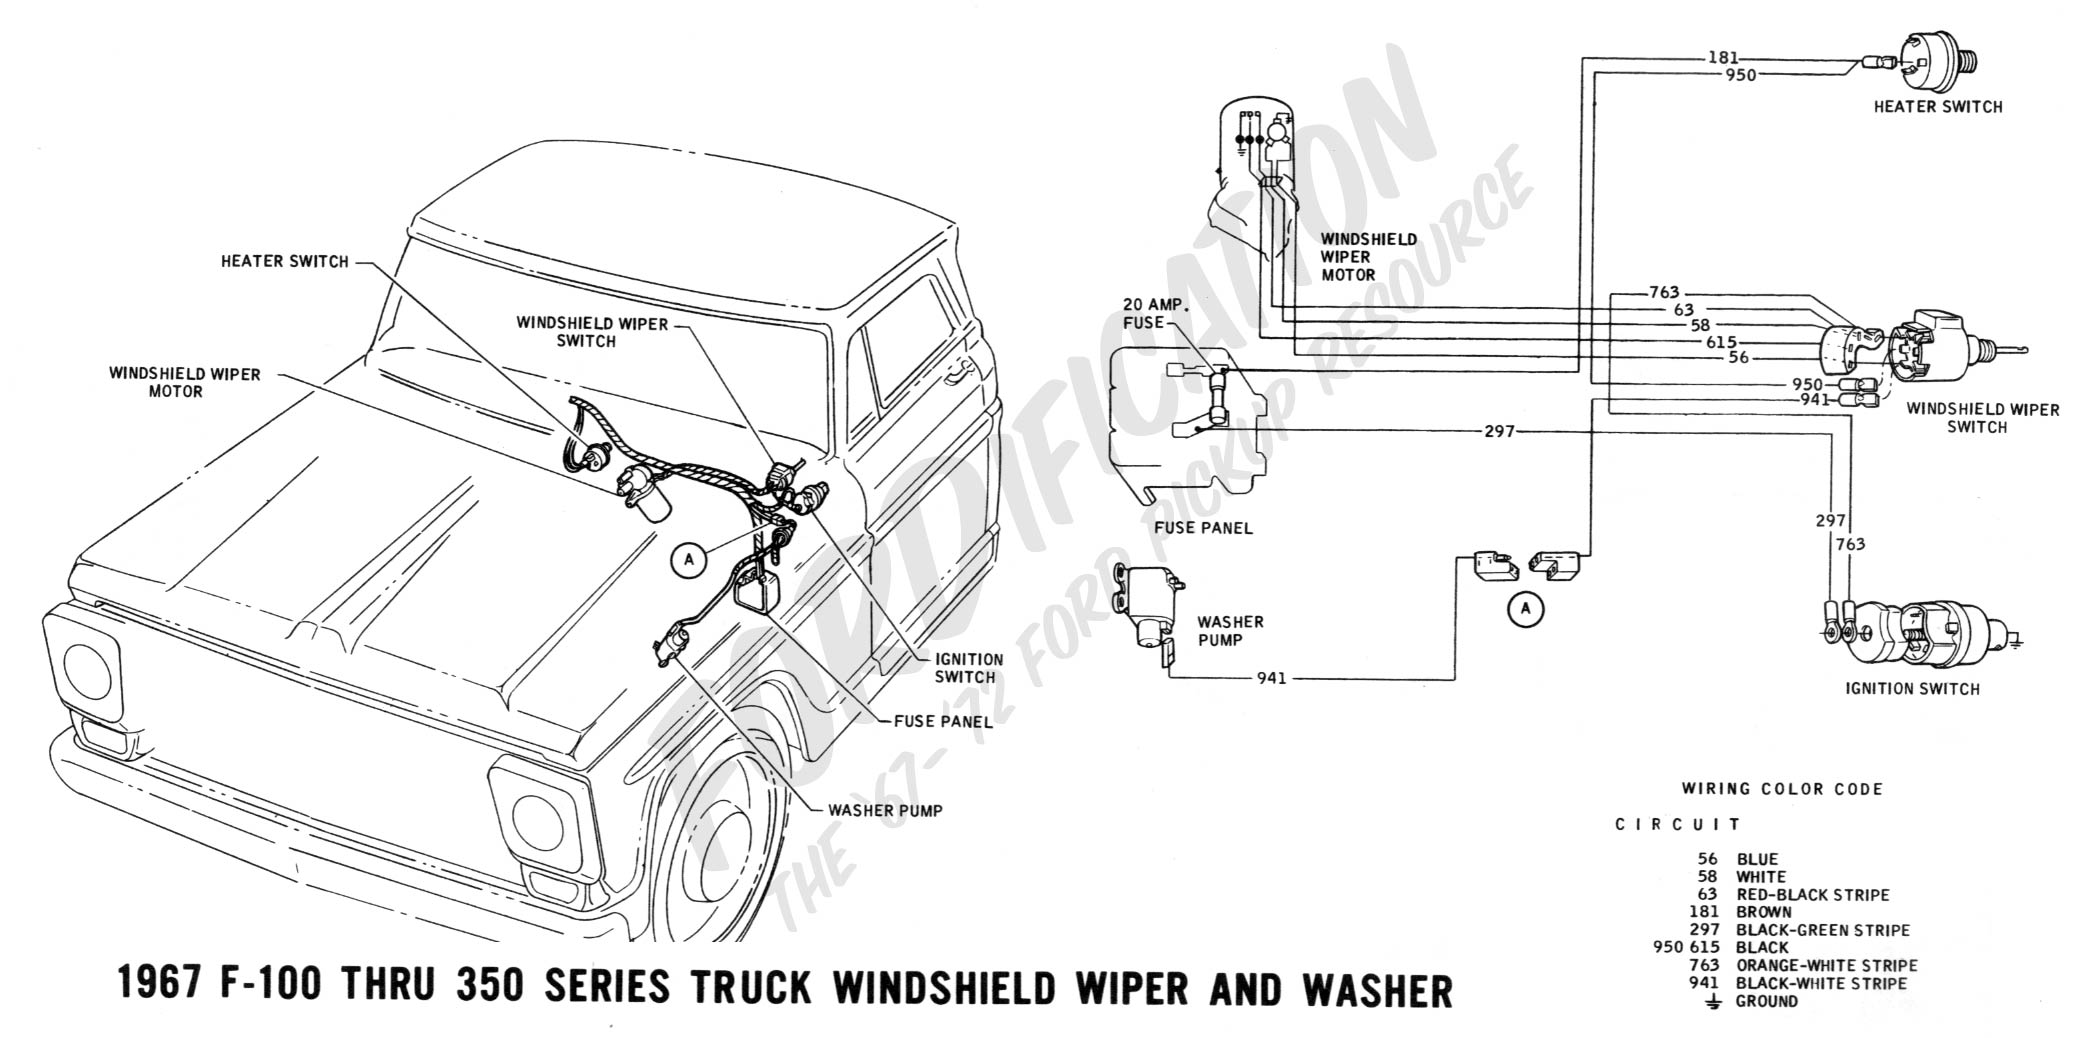 wiring 1967wipers wiper wiring diagram wiper wiring diagram for 1985 chevy vega 1972 Chevy C10 Wiring-Diagram at gsmportal.co